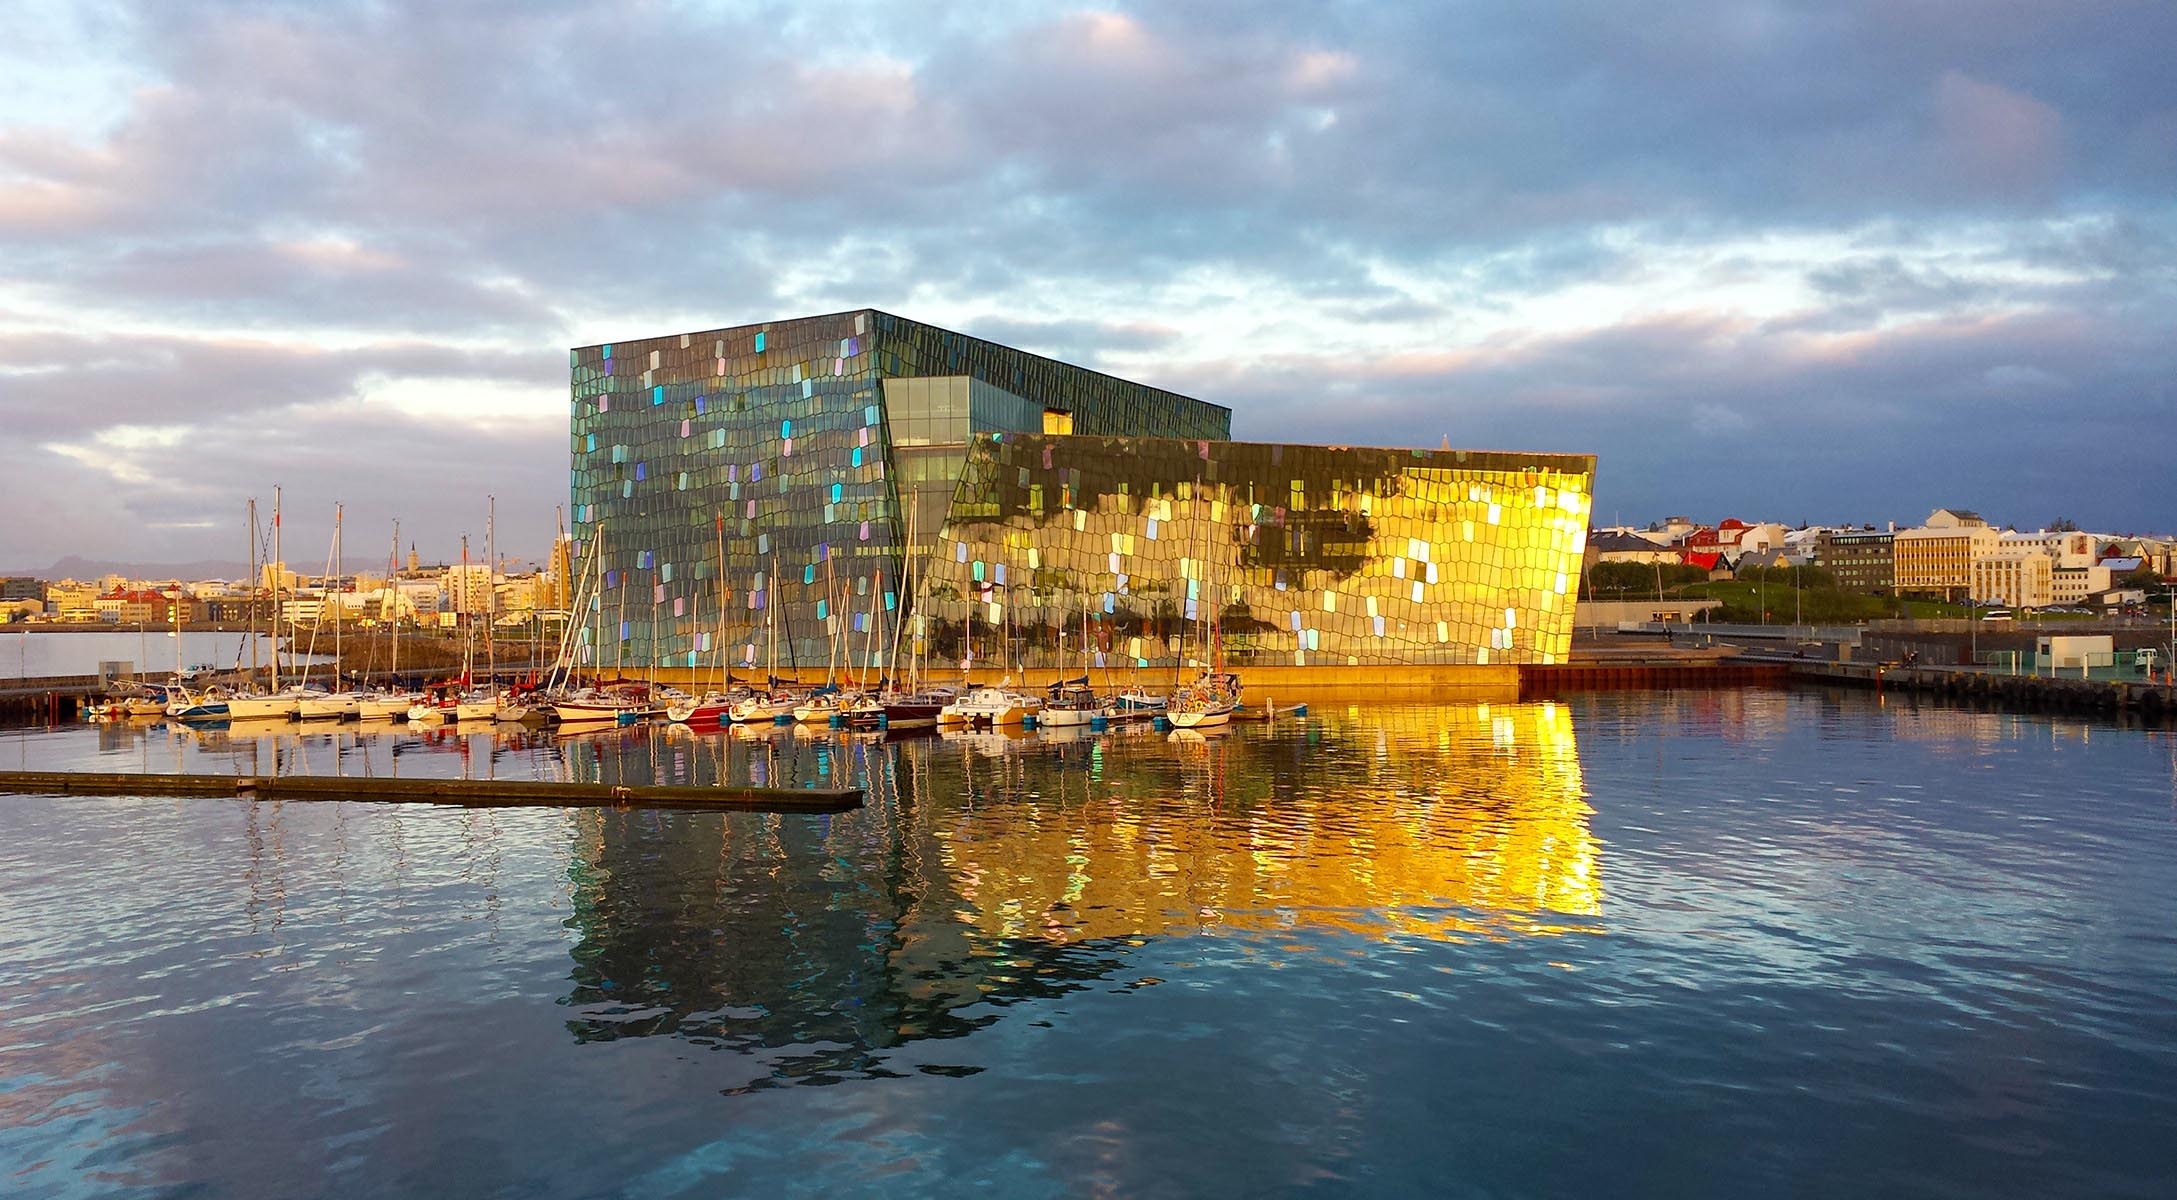 Harpa in Reykjavik: Iceland's symbol of recovery